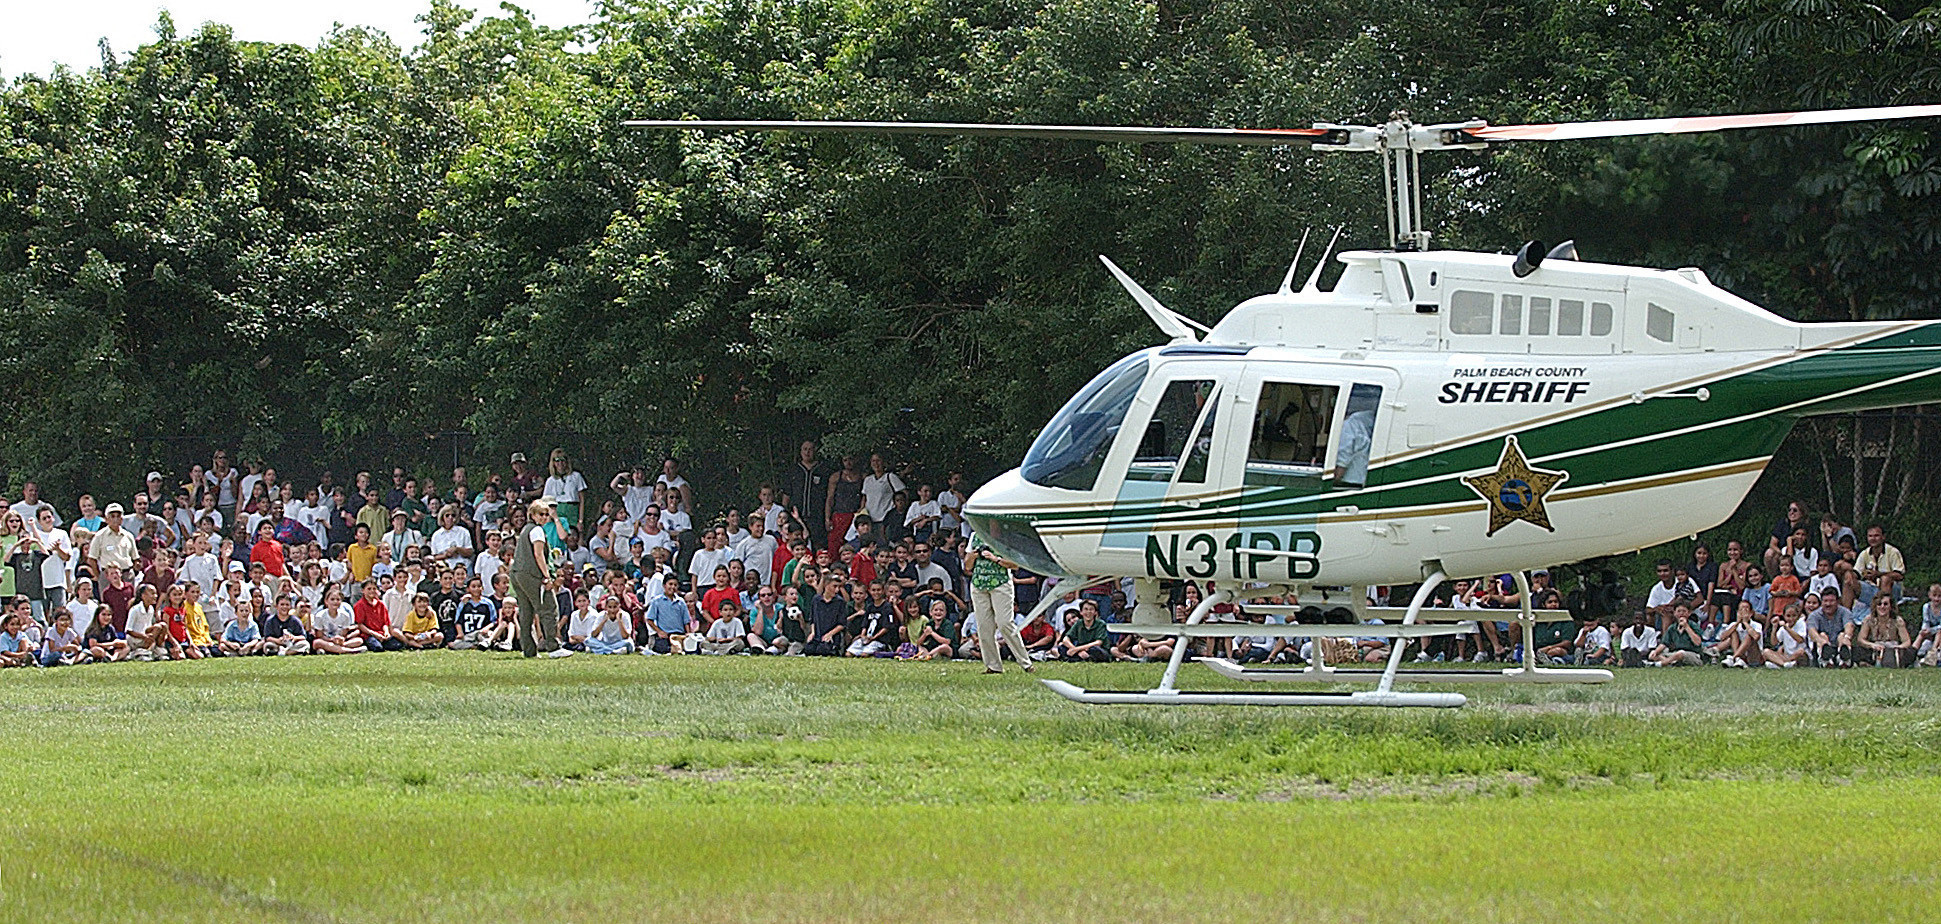 Palm Beach Sheriff Helicopter